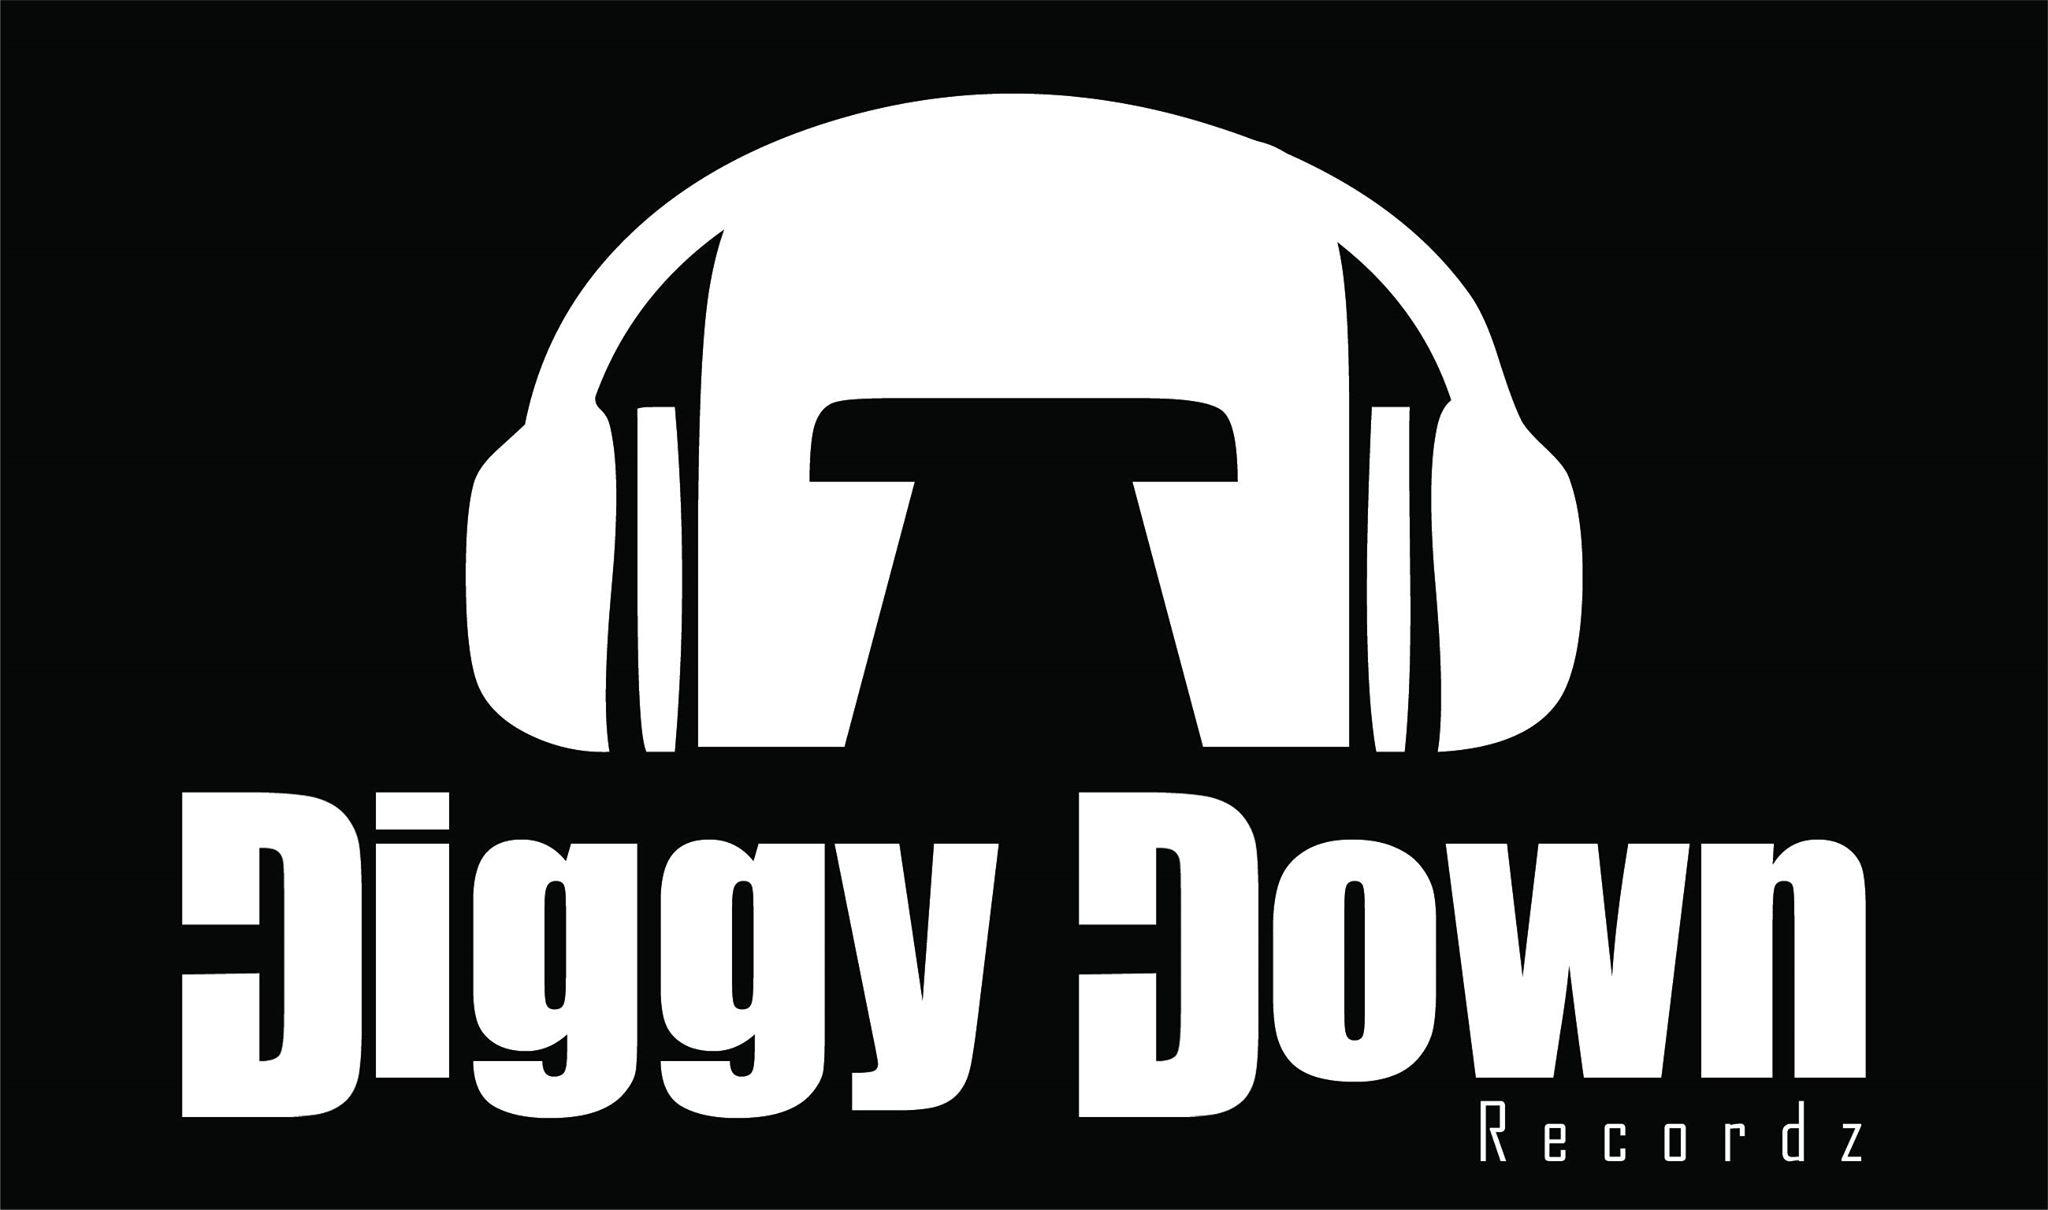 Diggy Down Recordz